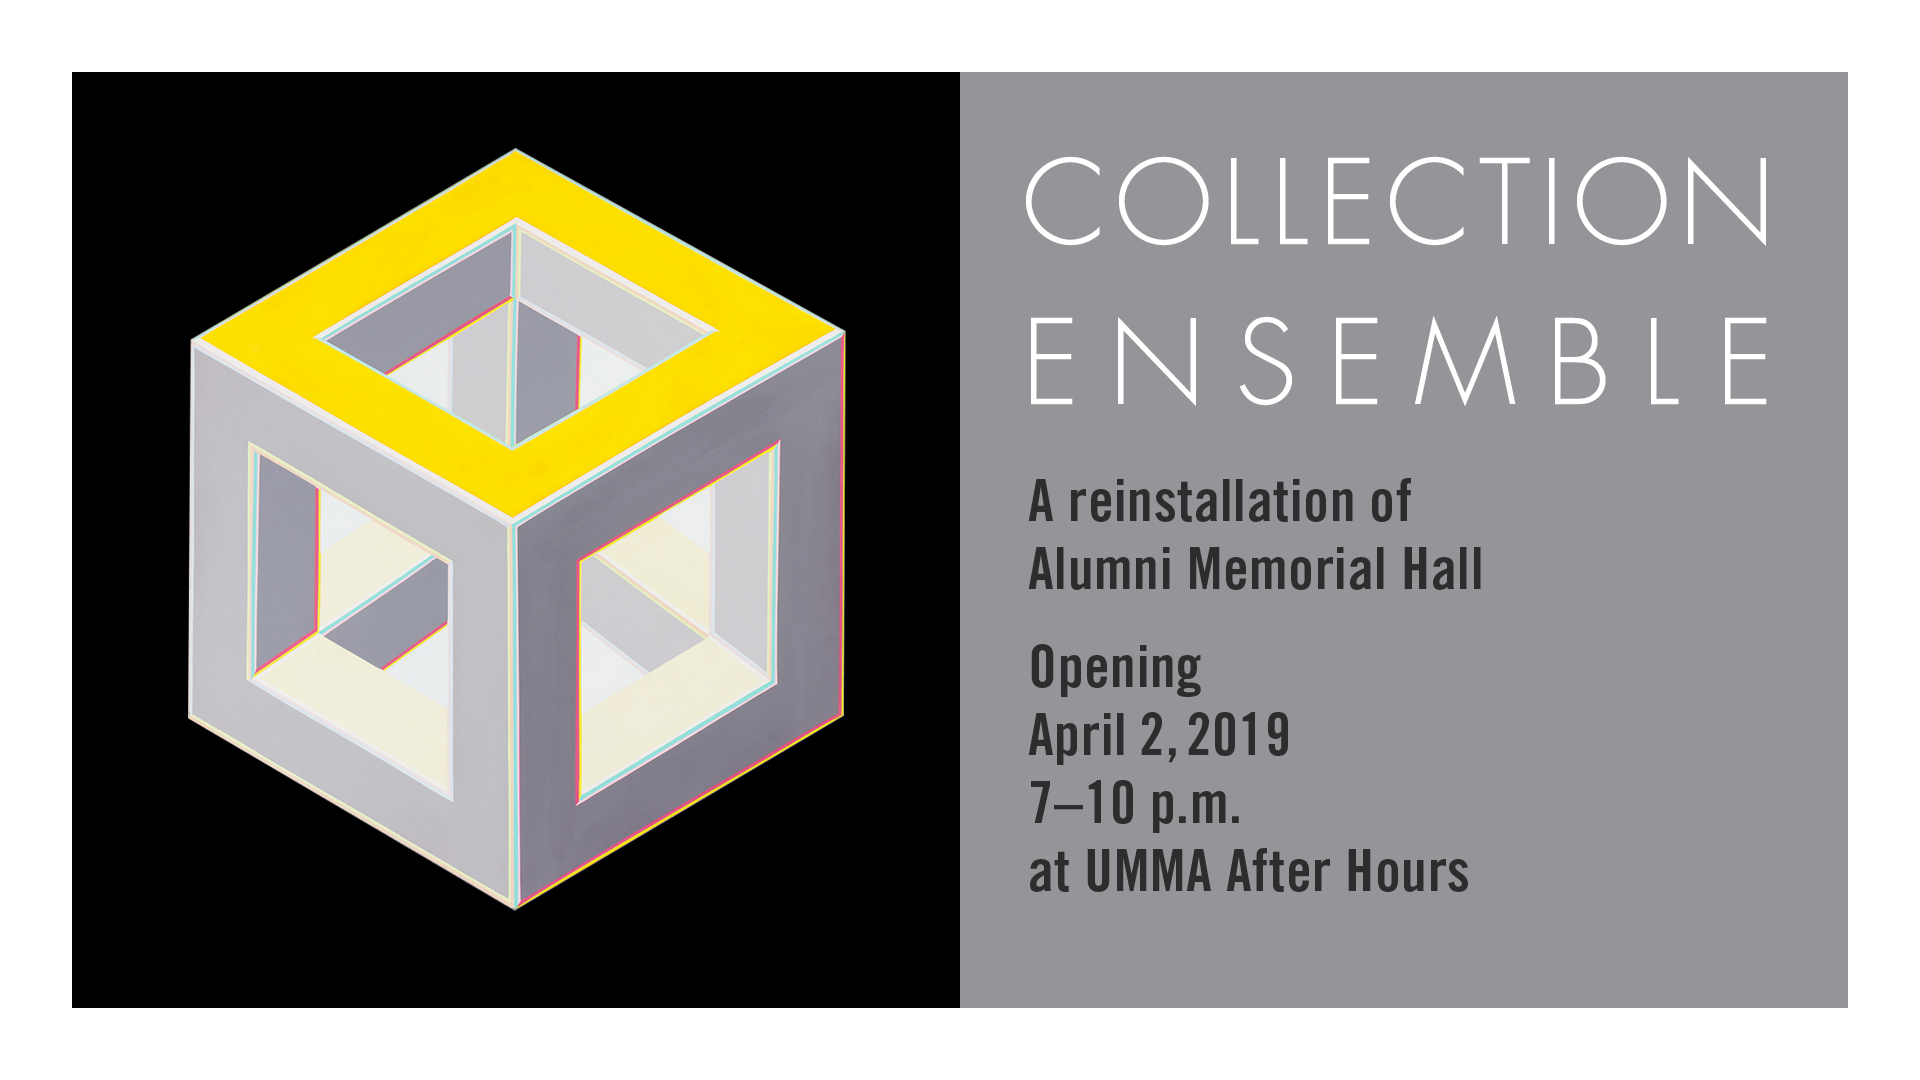 Collection Ensemble Opens April 2, 2019